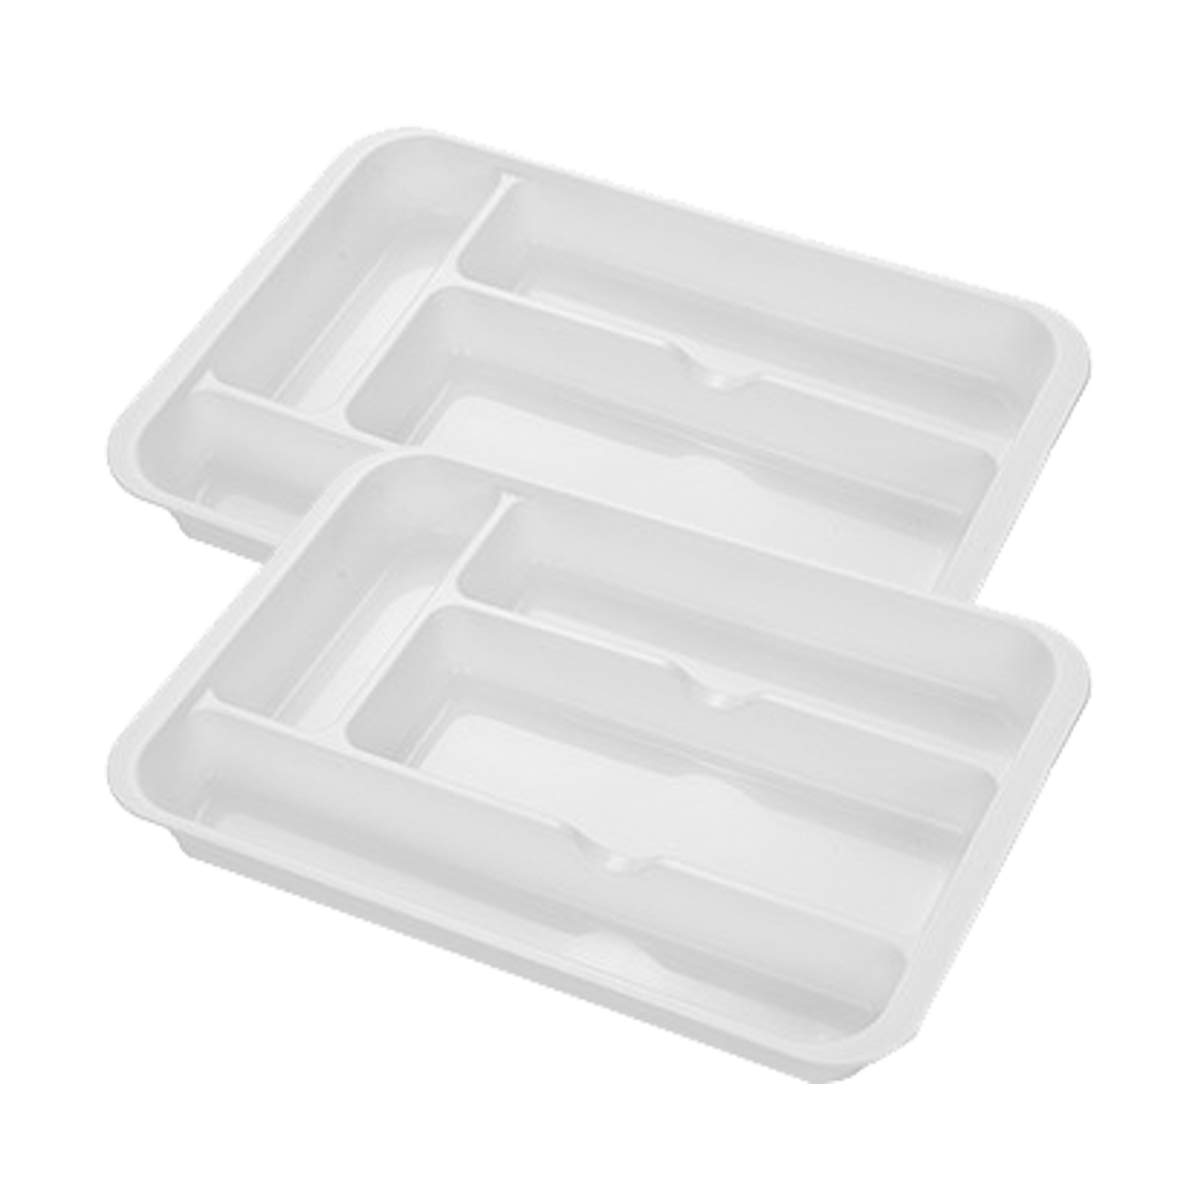 SHOW-WF Plastic Drawer Cutlery Organiser Tray with 4 Units Compartments, for Cooking Utensils/Craft Supplies/Jewellery/Gadgets,29.6x19.8x3.7cm, 2 Pieces,White